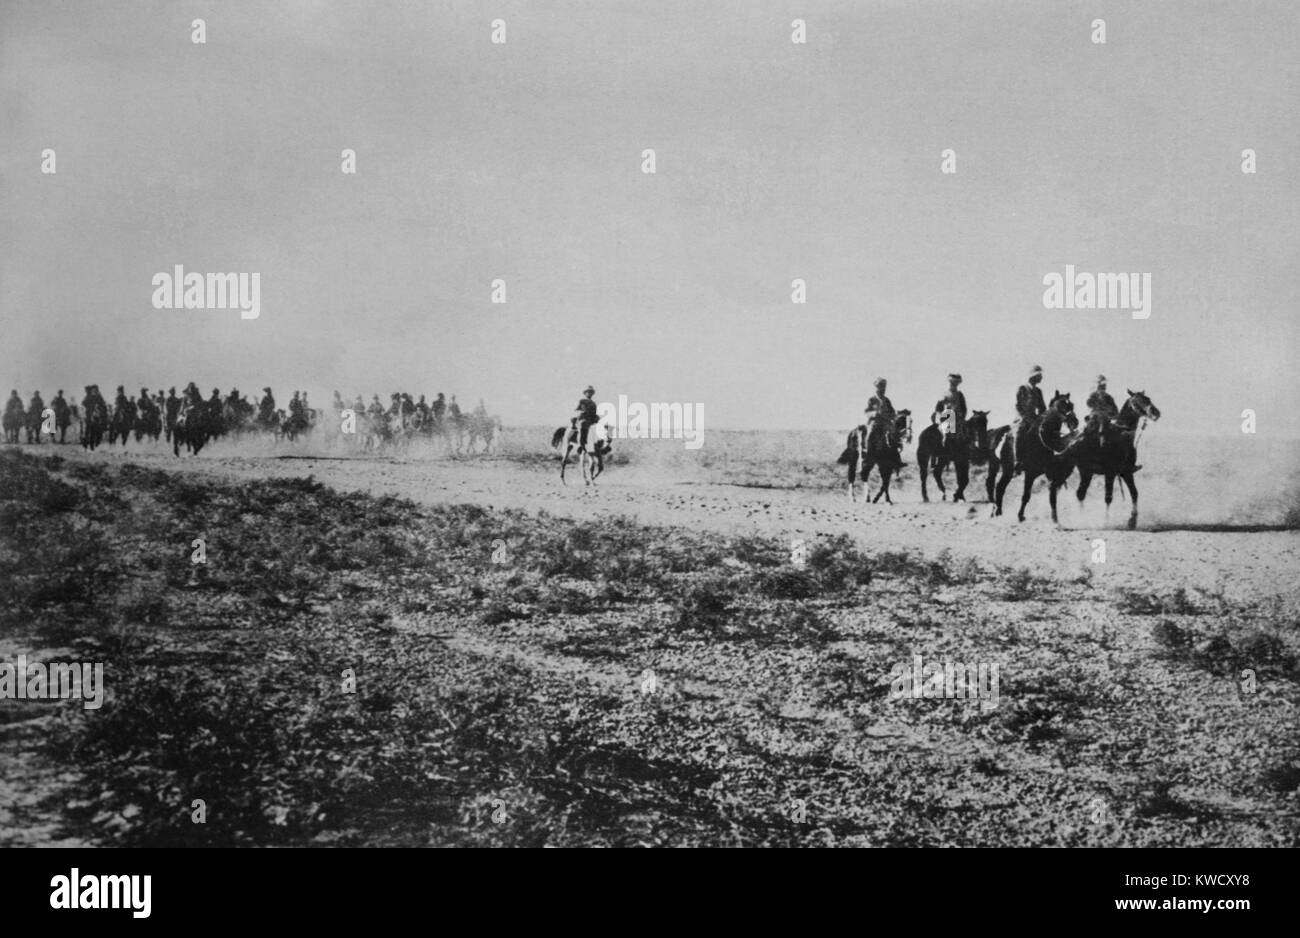 Anglo-Indian cavalry in the desert on the Tigris River in Iraq during World War I. In 1915 they advanced to Ctesiphon - Stock Image